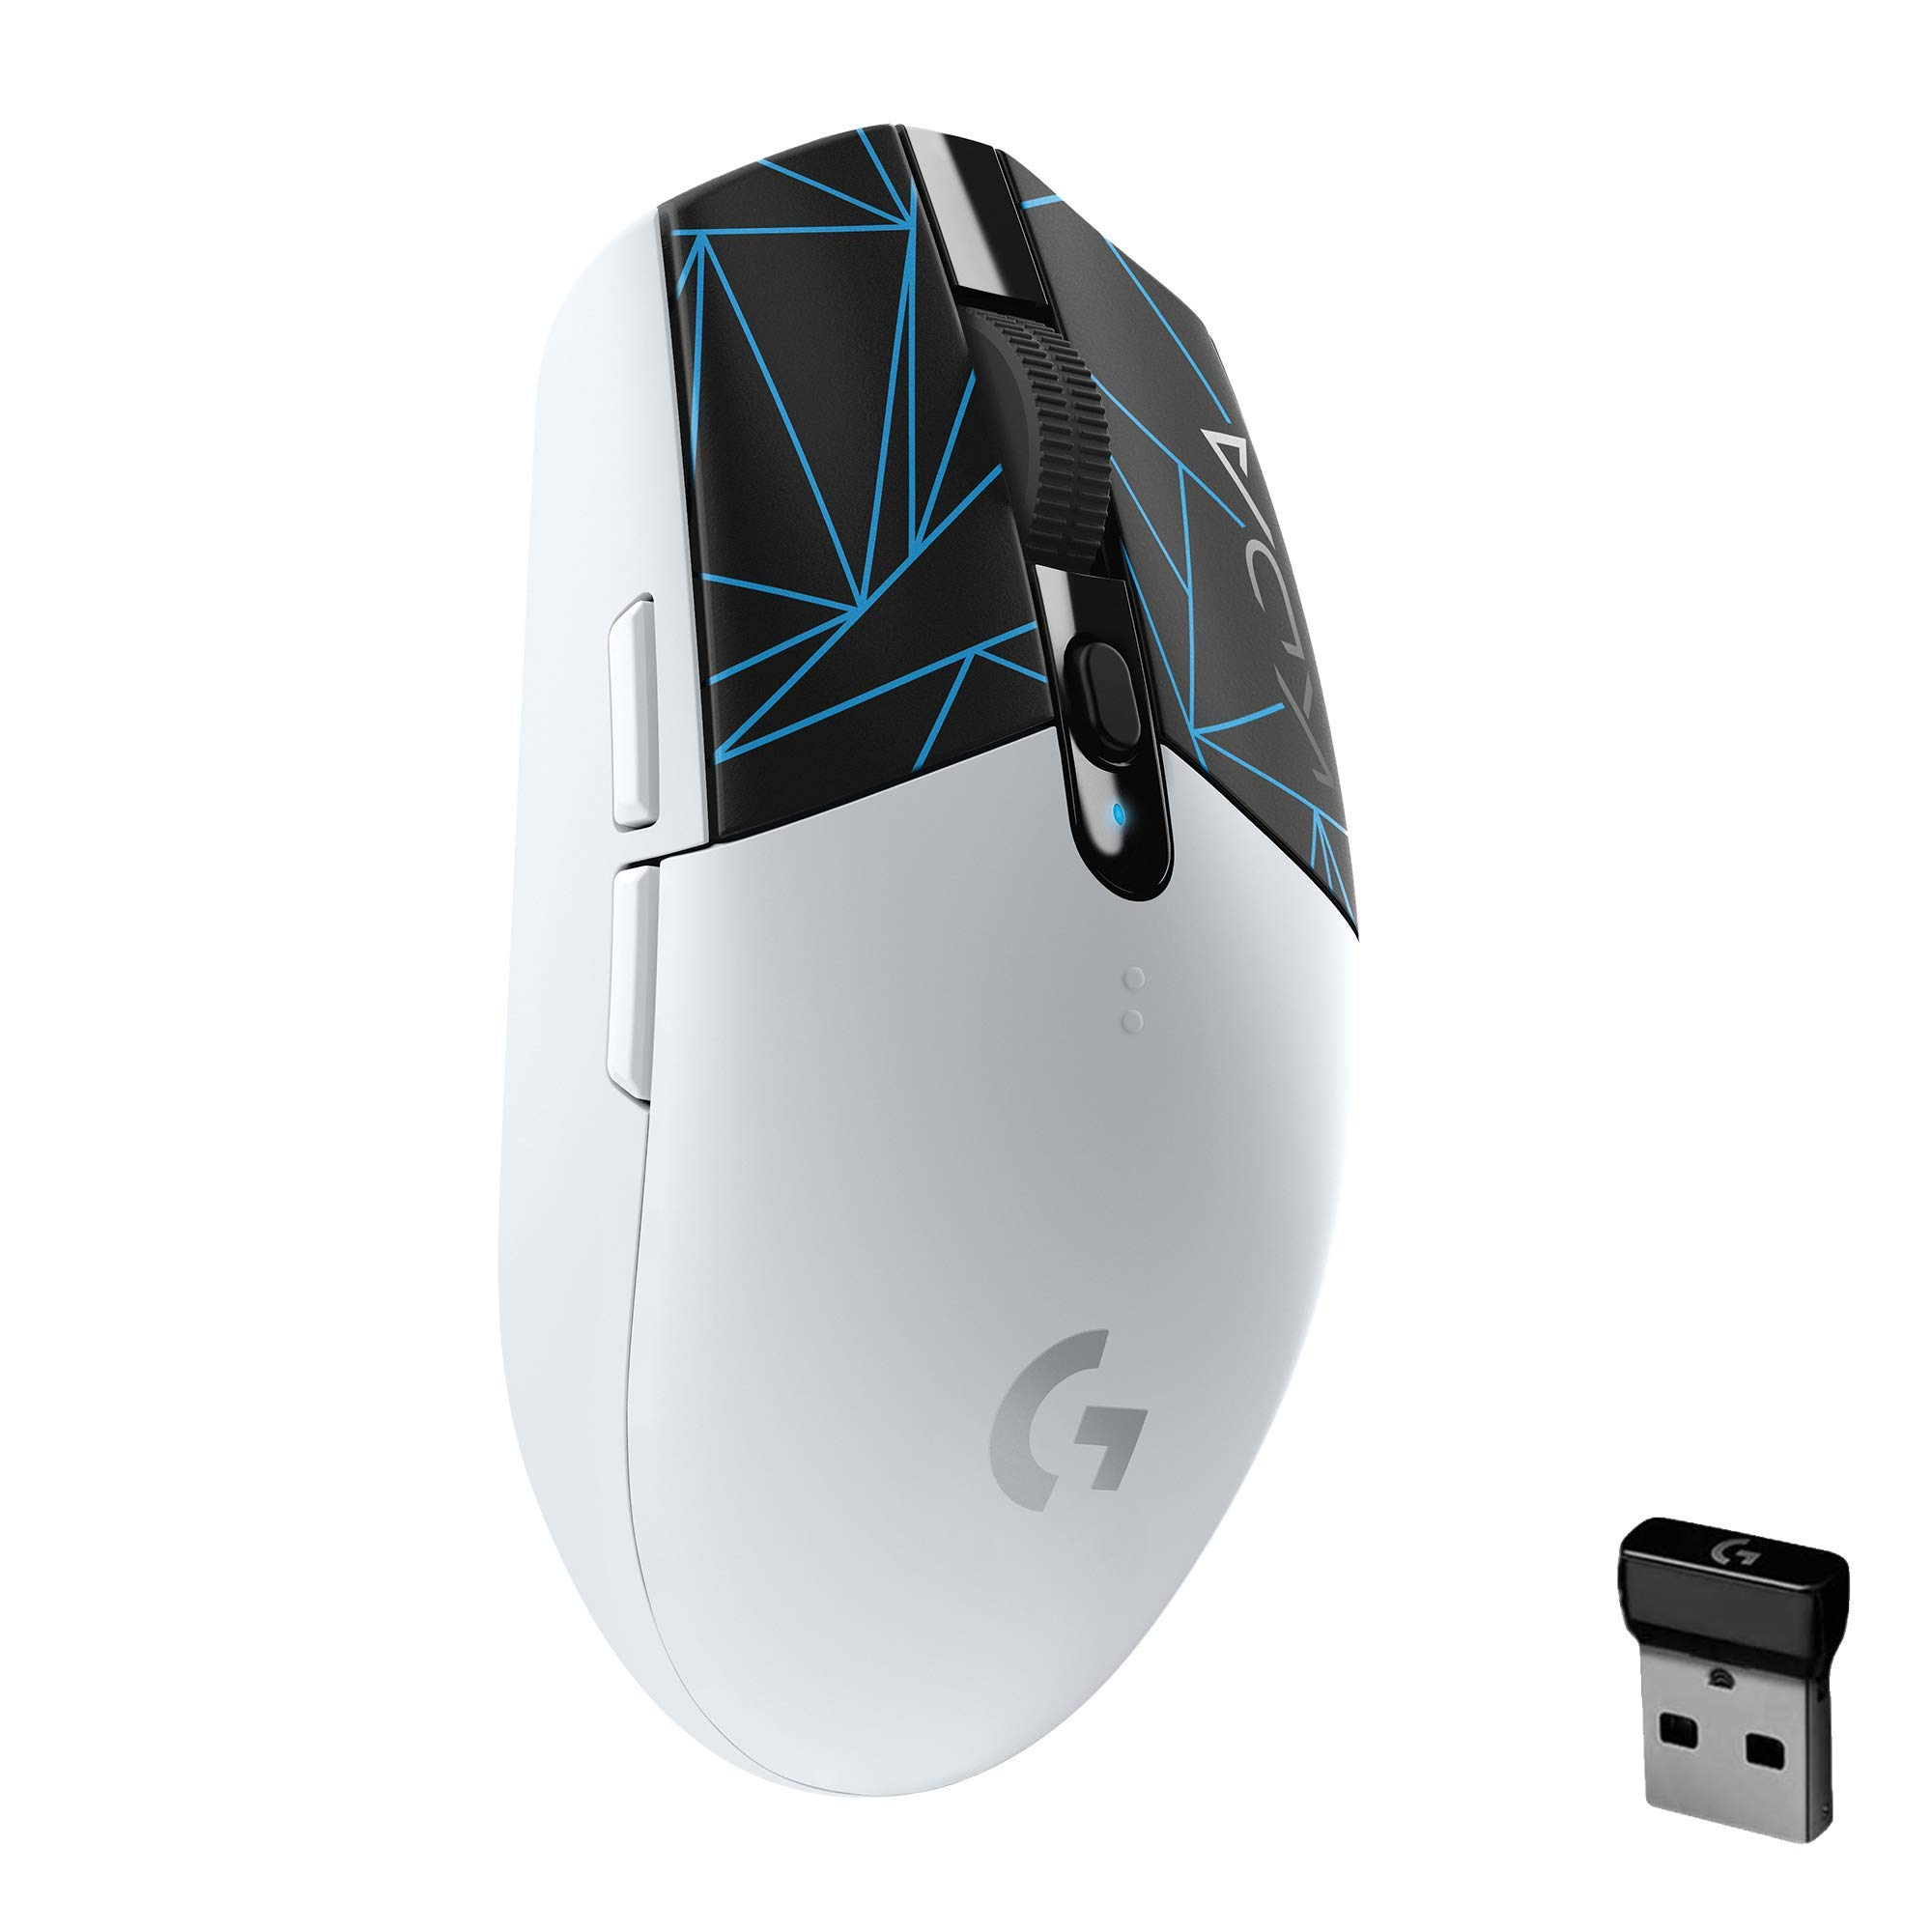 Logitech G305 K/DA Lightspeed Wireless Gaming Mouse - Official League of Legends KDA Gaming Gear - HERO 12,000 DPI, 6 Programmable Buttons, 250h Battery Life, On-Board Memory, Compatible with PC / Mac